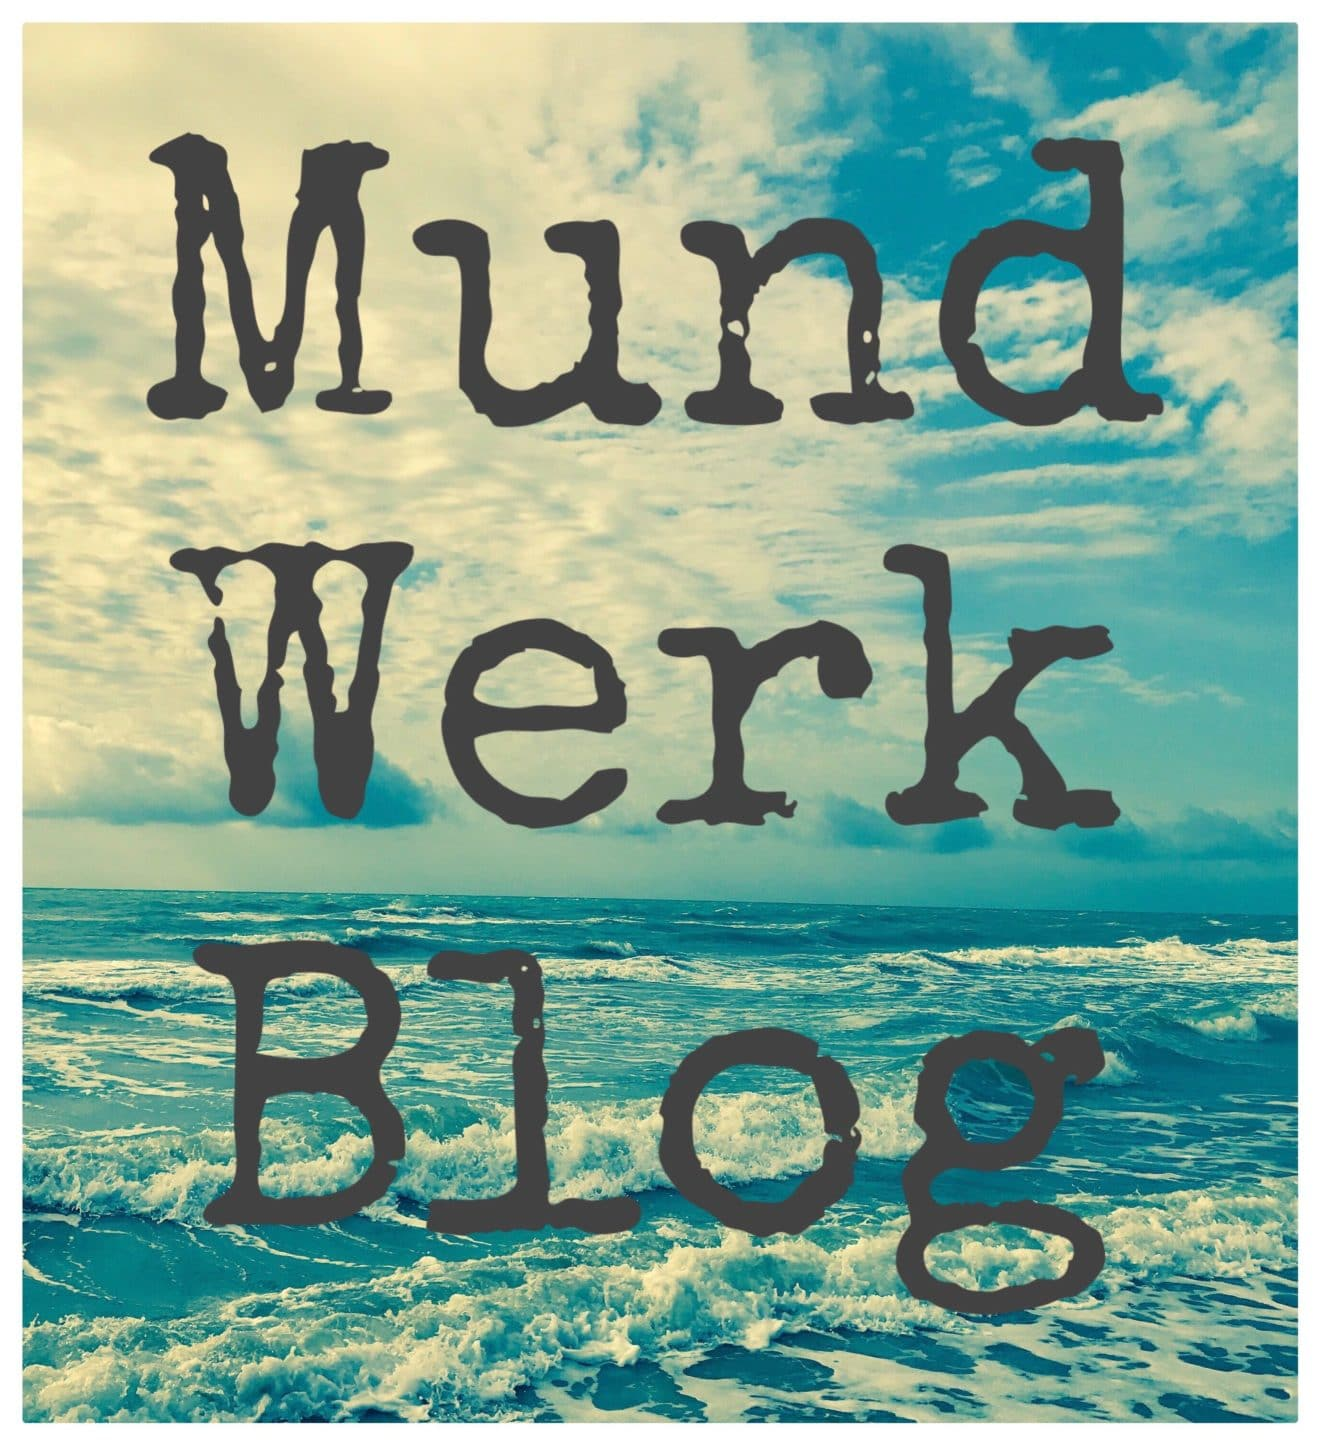 Mundwerk Blog - Bilder, Videos & Texte